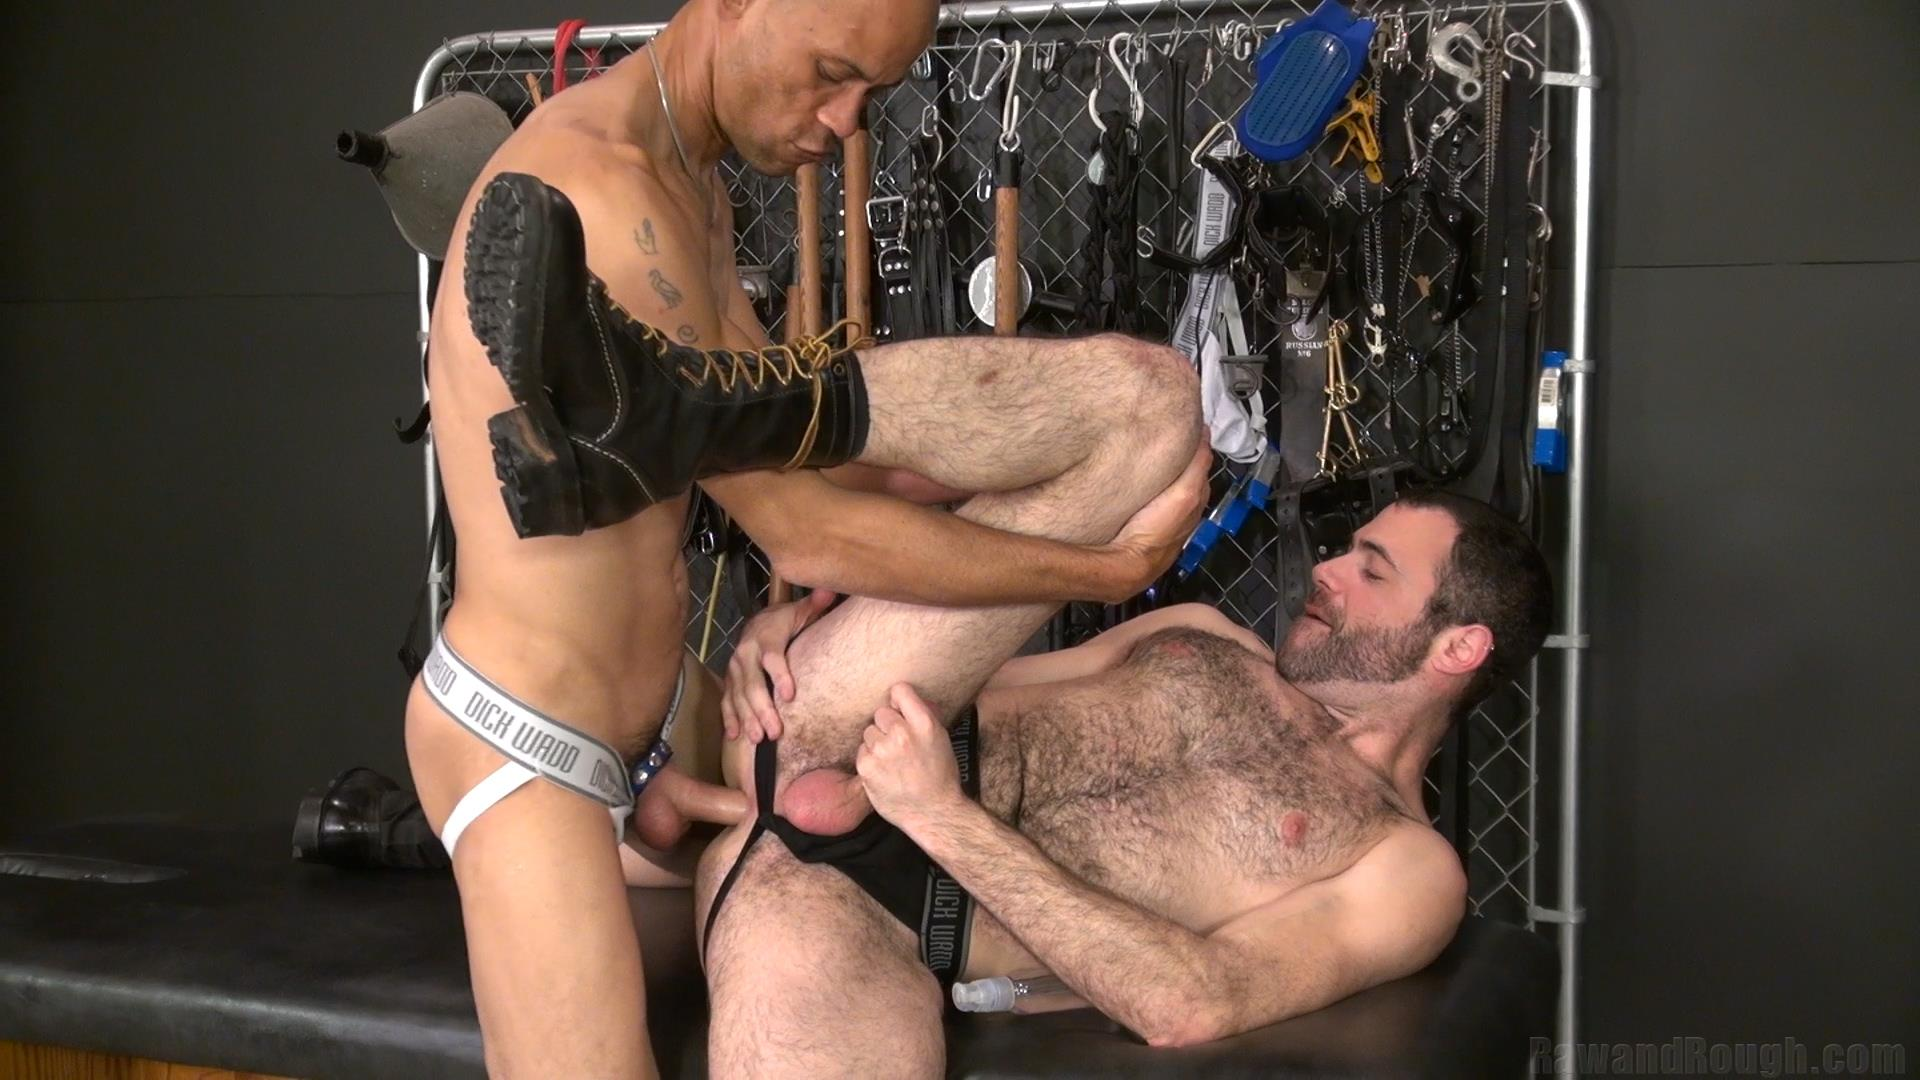 Raw and Rough Dusty Williams and Seth Patrick Barebacking A Stranger at A Sex Club Hairy Amateur Gay Porn 01 Barebacking A Hairy Guy At A Gay Sex Club